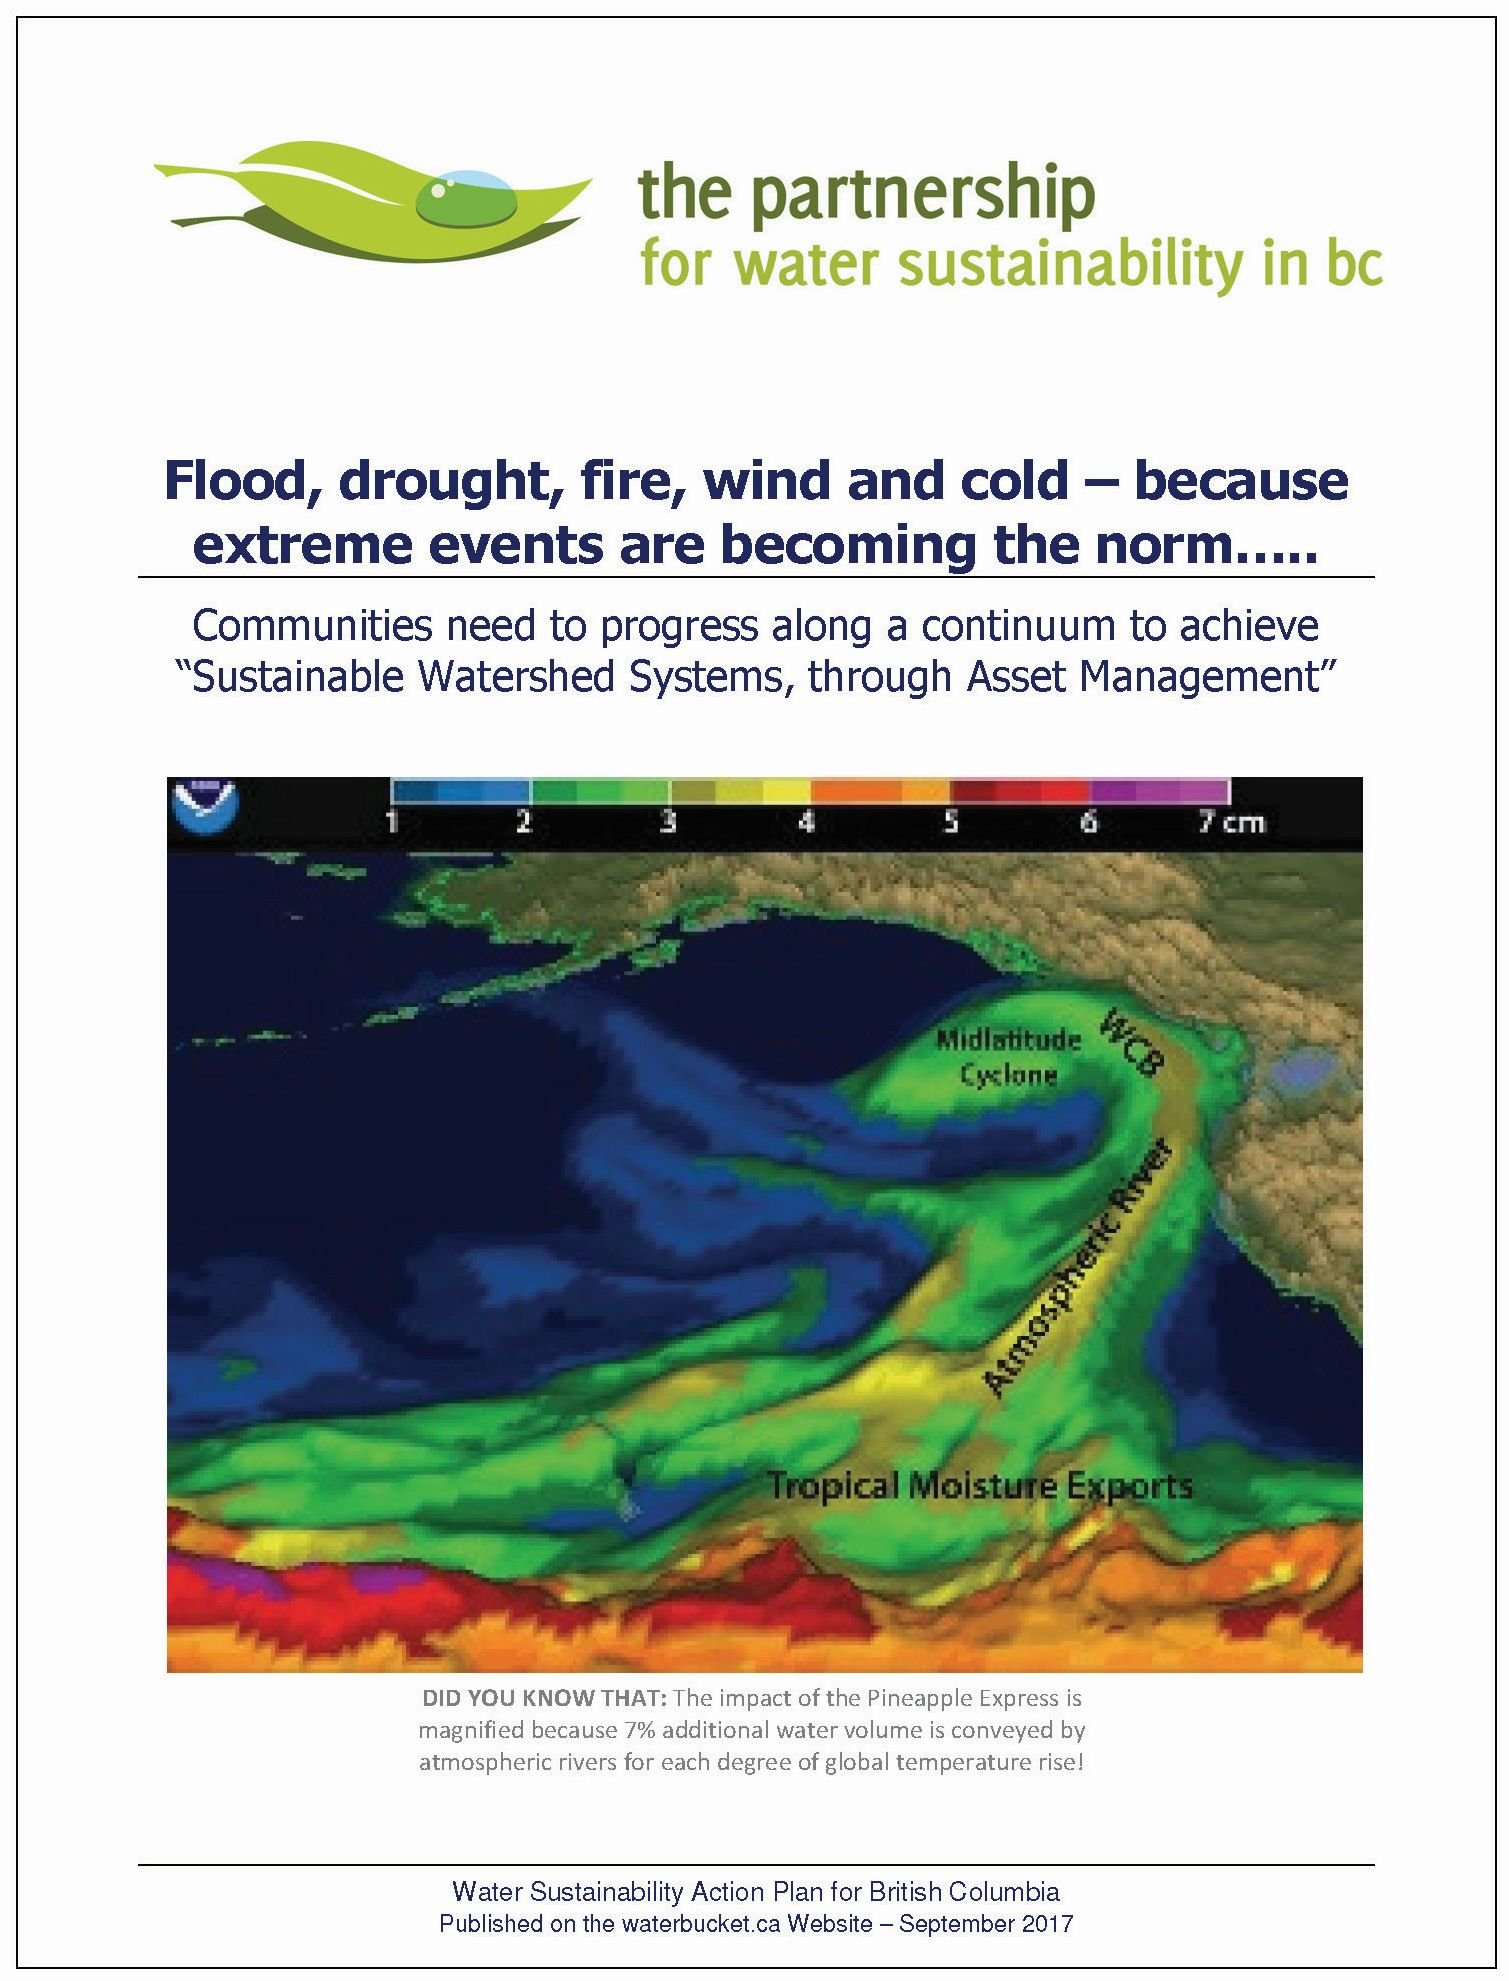 PWSBC_Water Balance Tools for Climate Action_Sep2017_cover